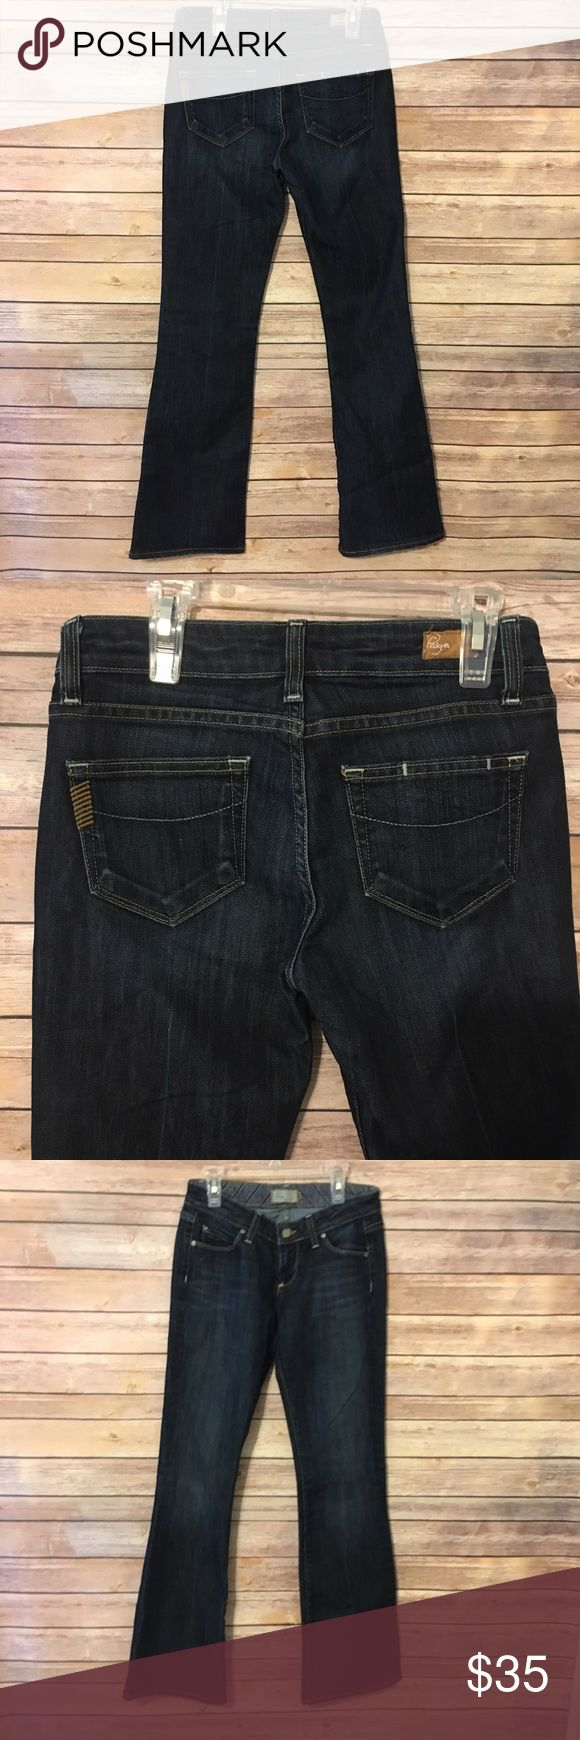 Paige premium denim laurel canyon dark wash jeans Dark wash. Great condition. Size 26 5 pocket jeans Paige Jeans Jeans Boot Cut